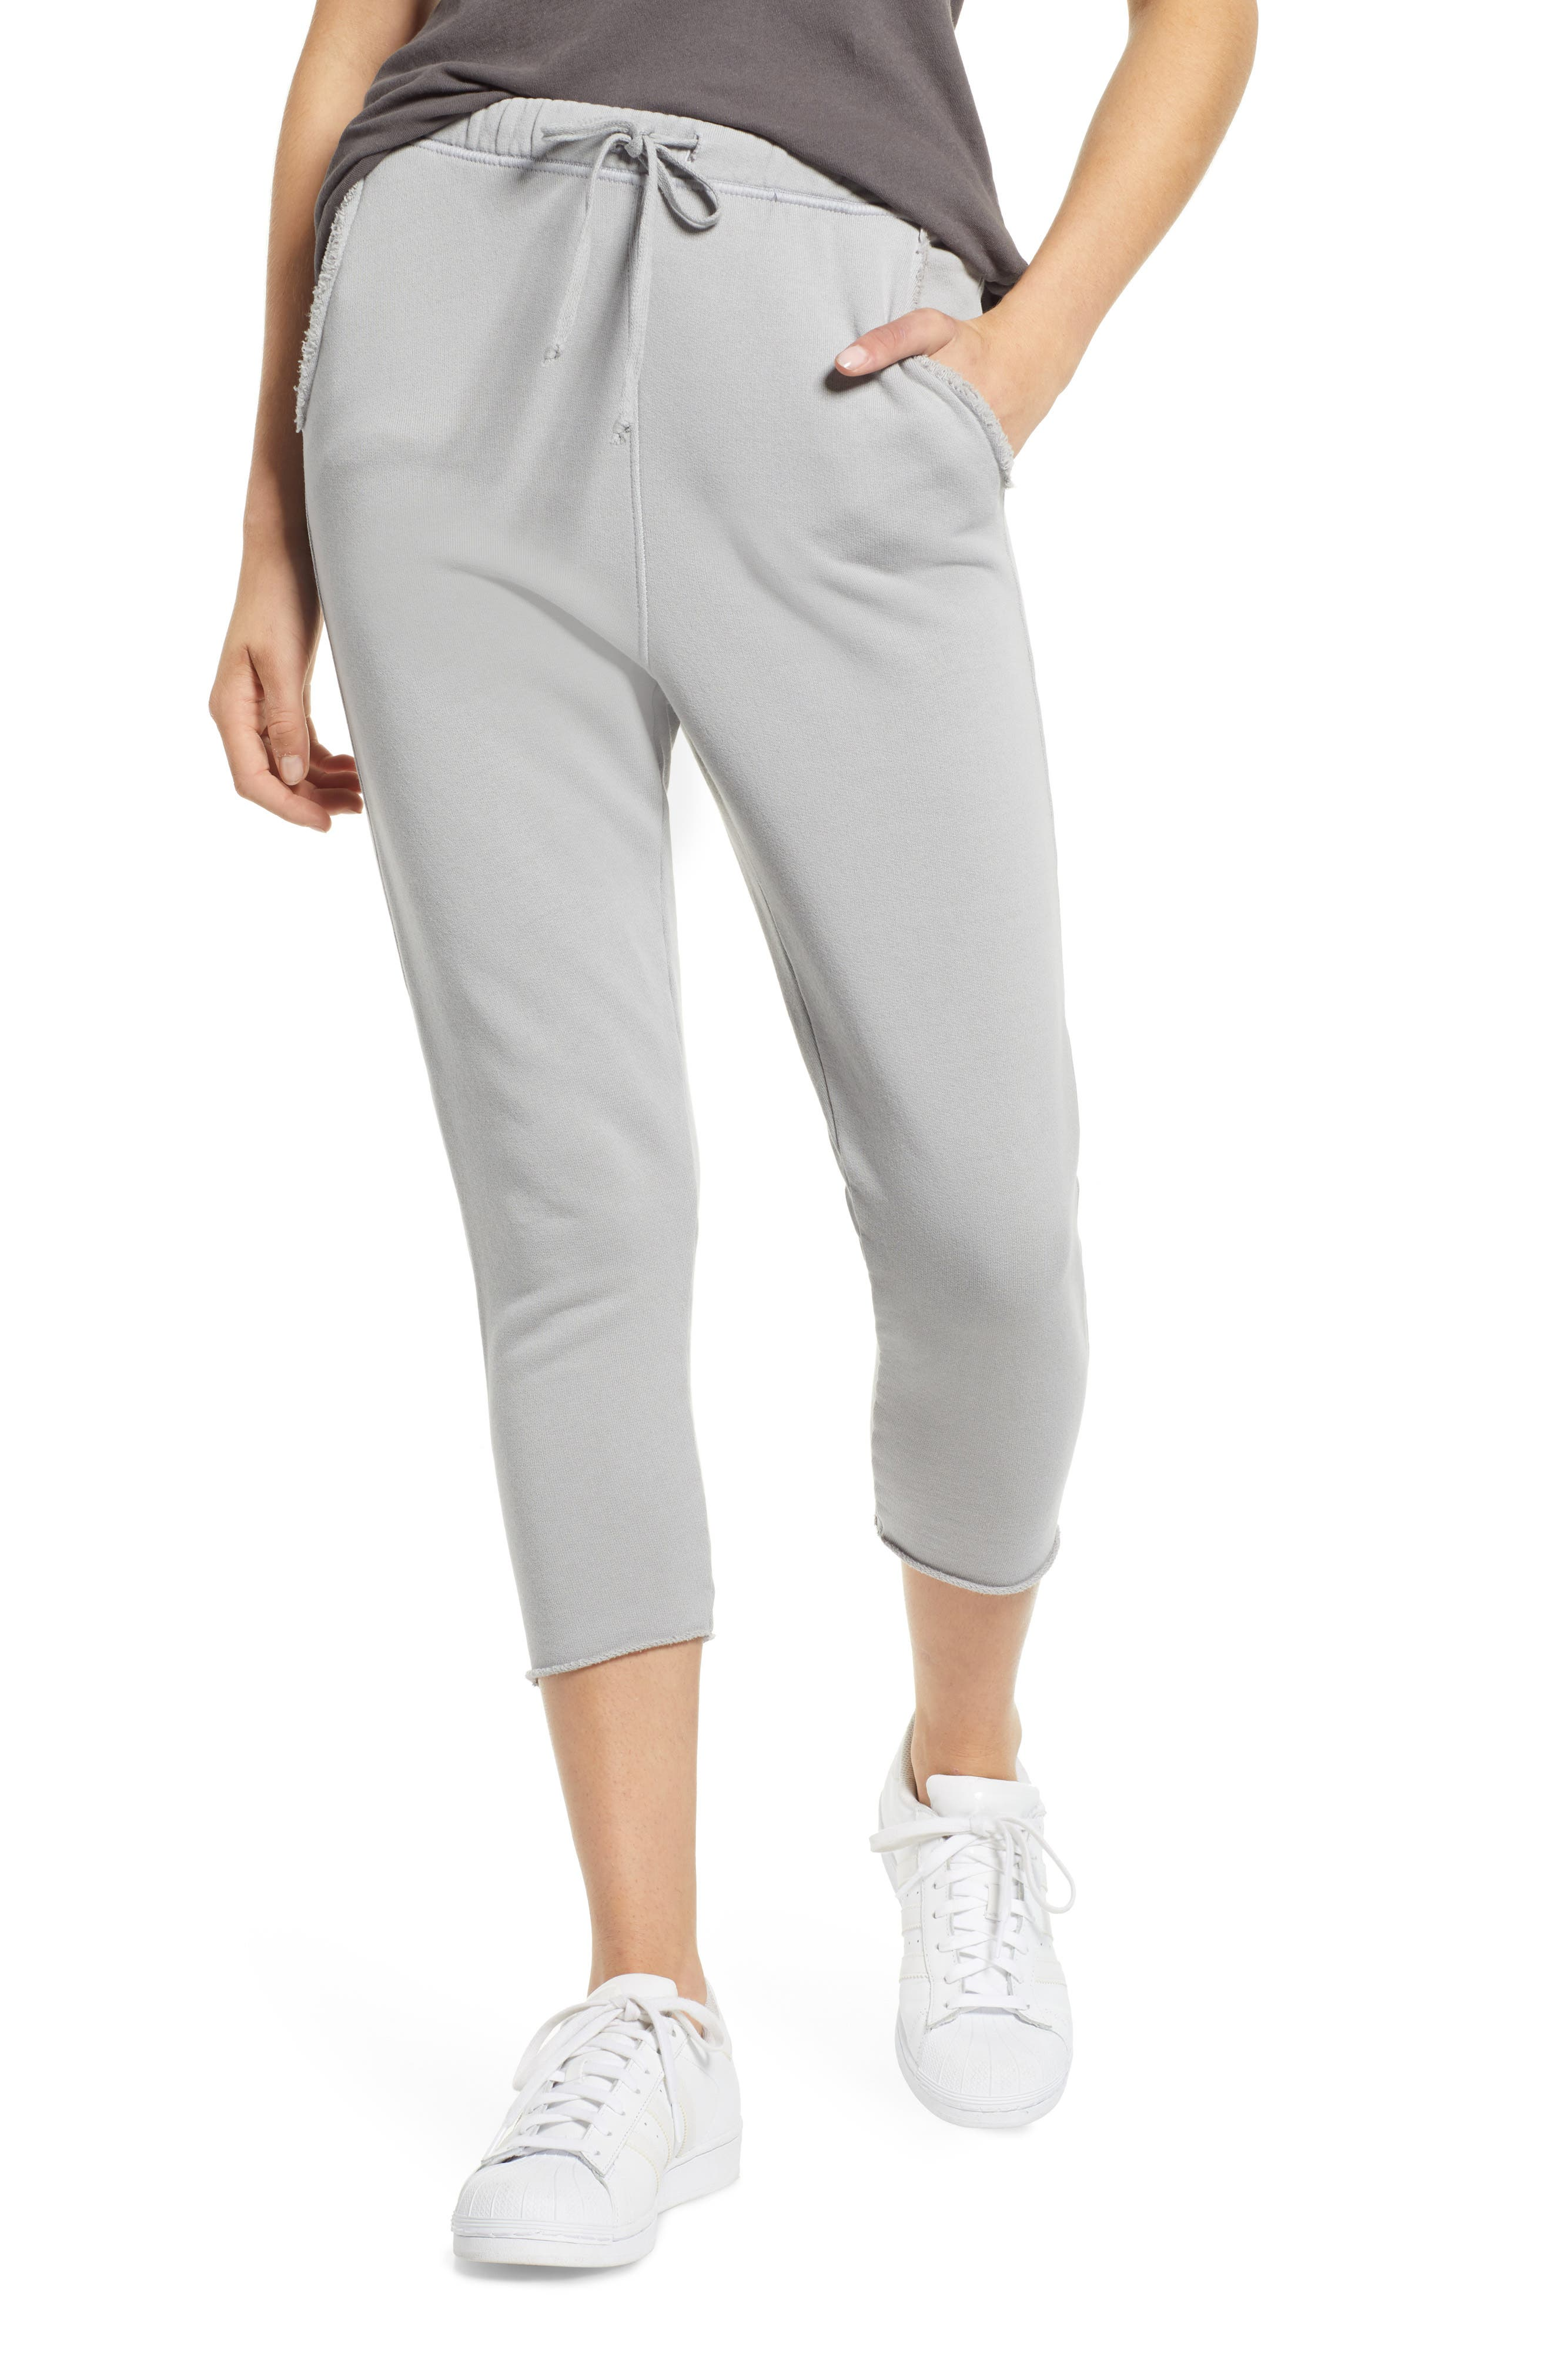 FRANK & EILEEN Tee Lab Crop Sweatpants in Dime